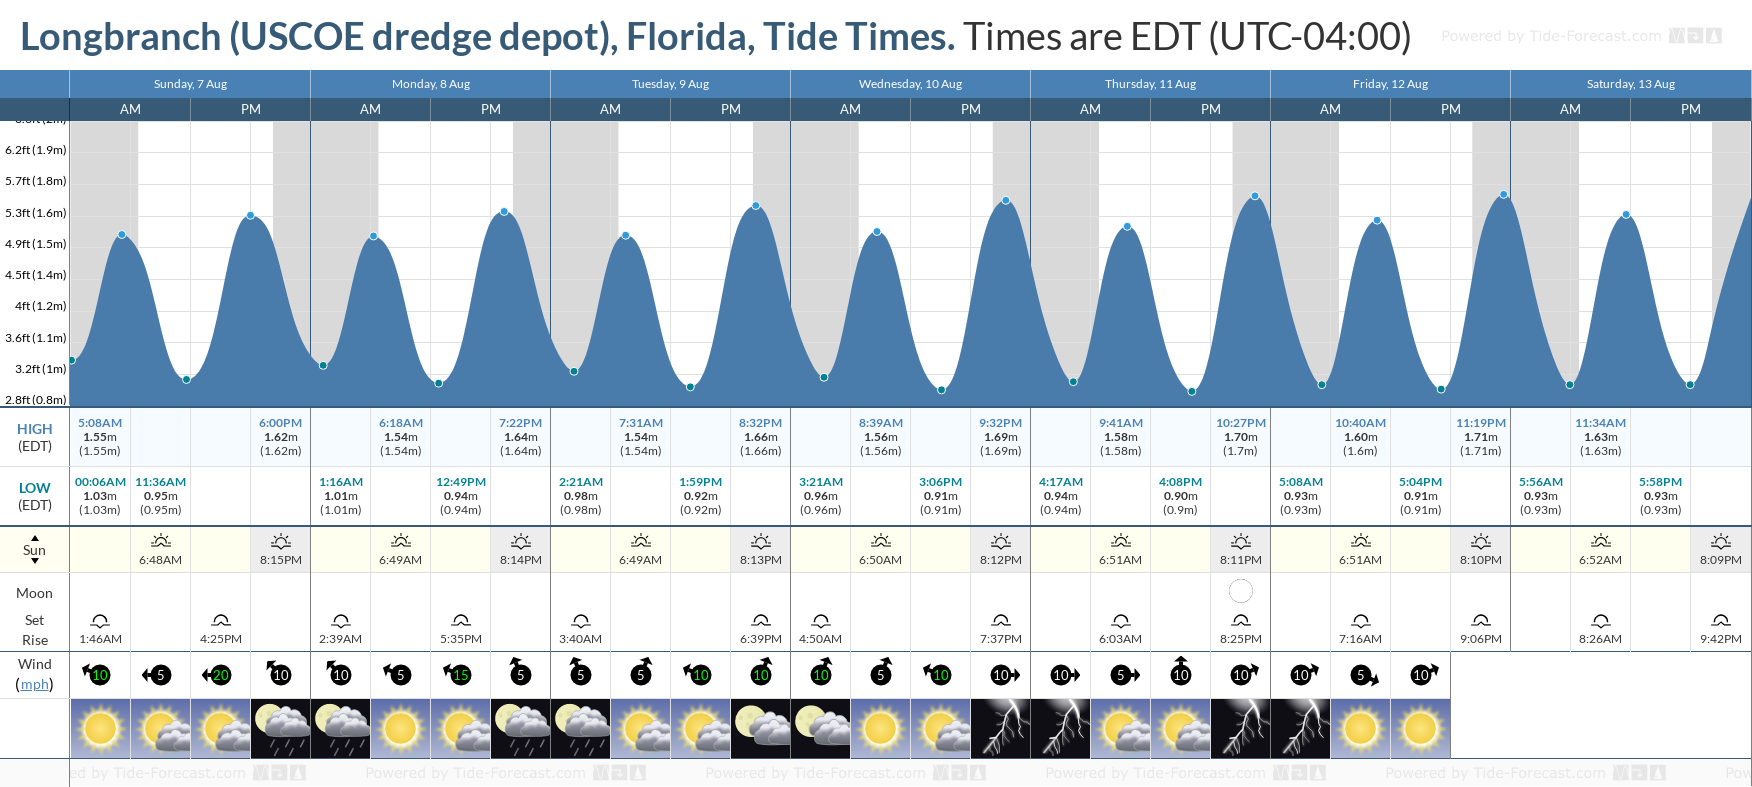 Longbranch (USCOE dredge depot), Florida Tide Chart including high and low tide tide times for the next 7 days